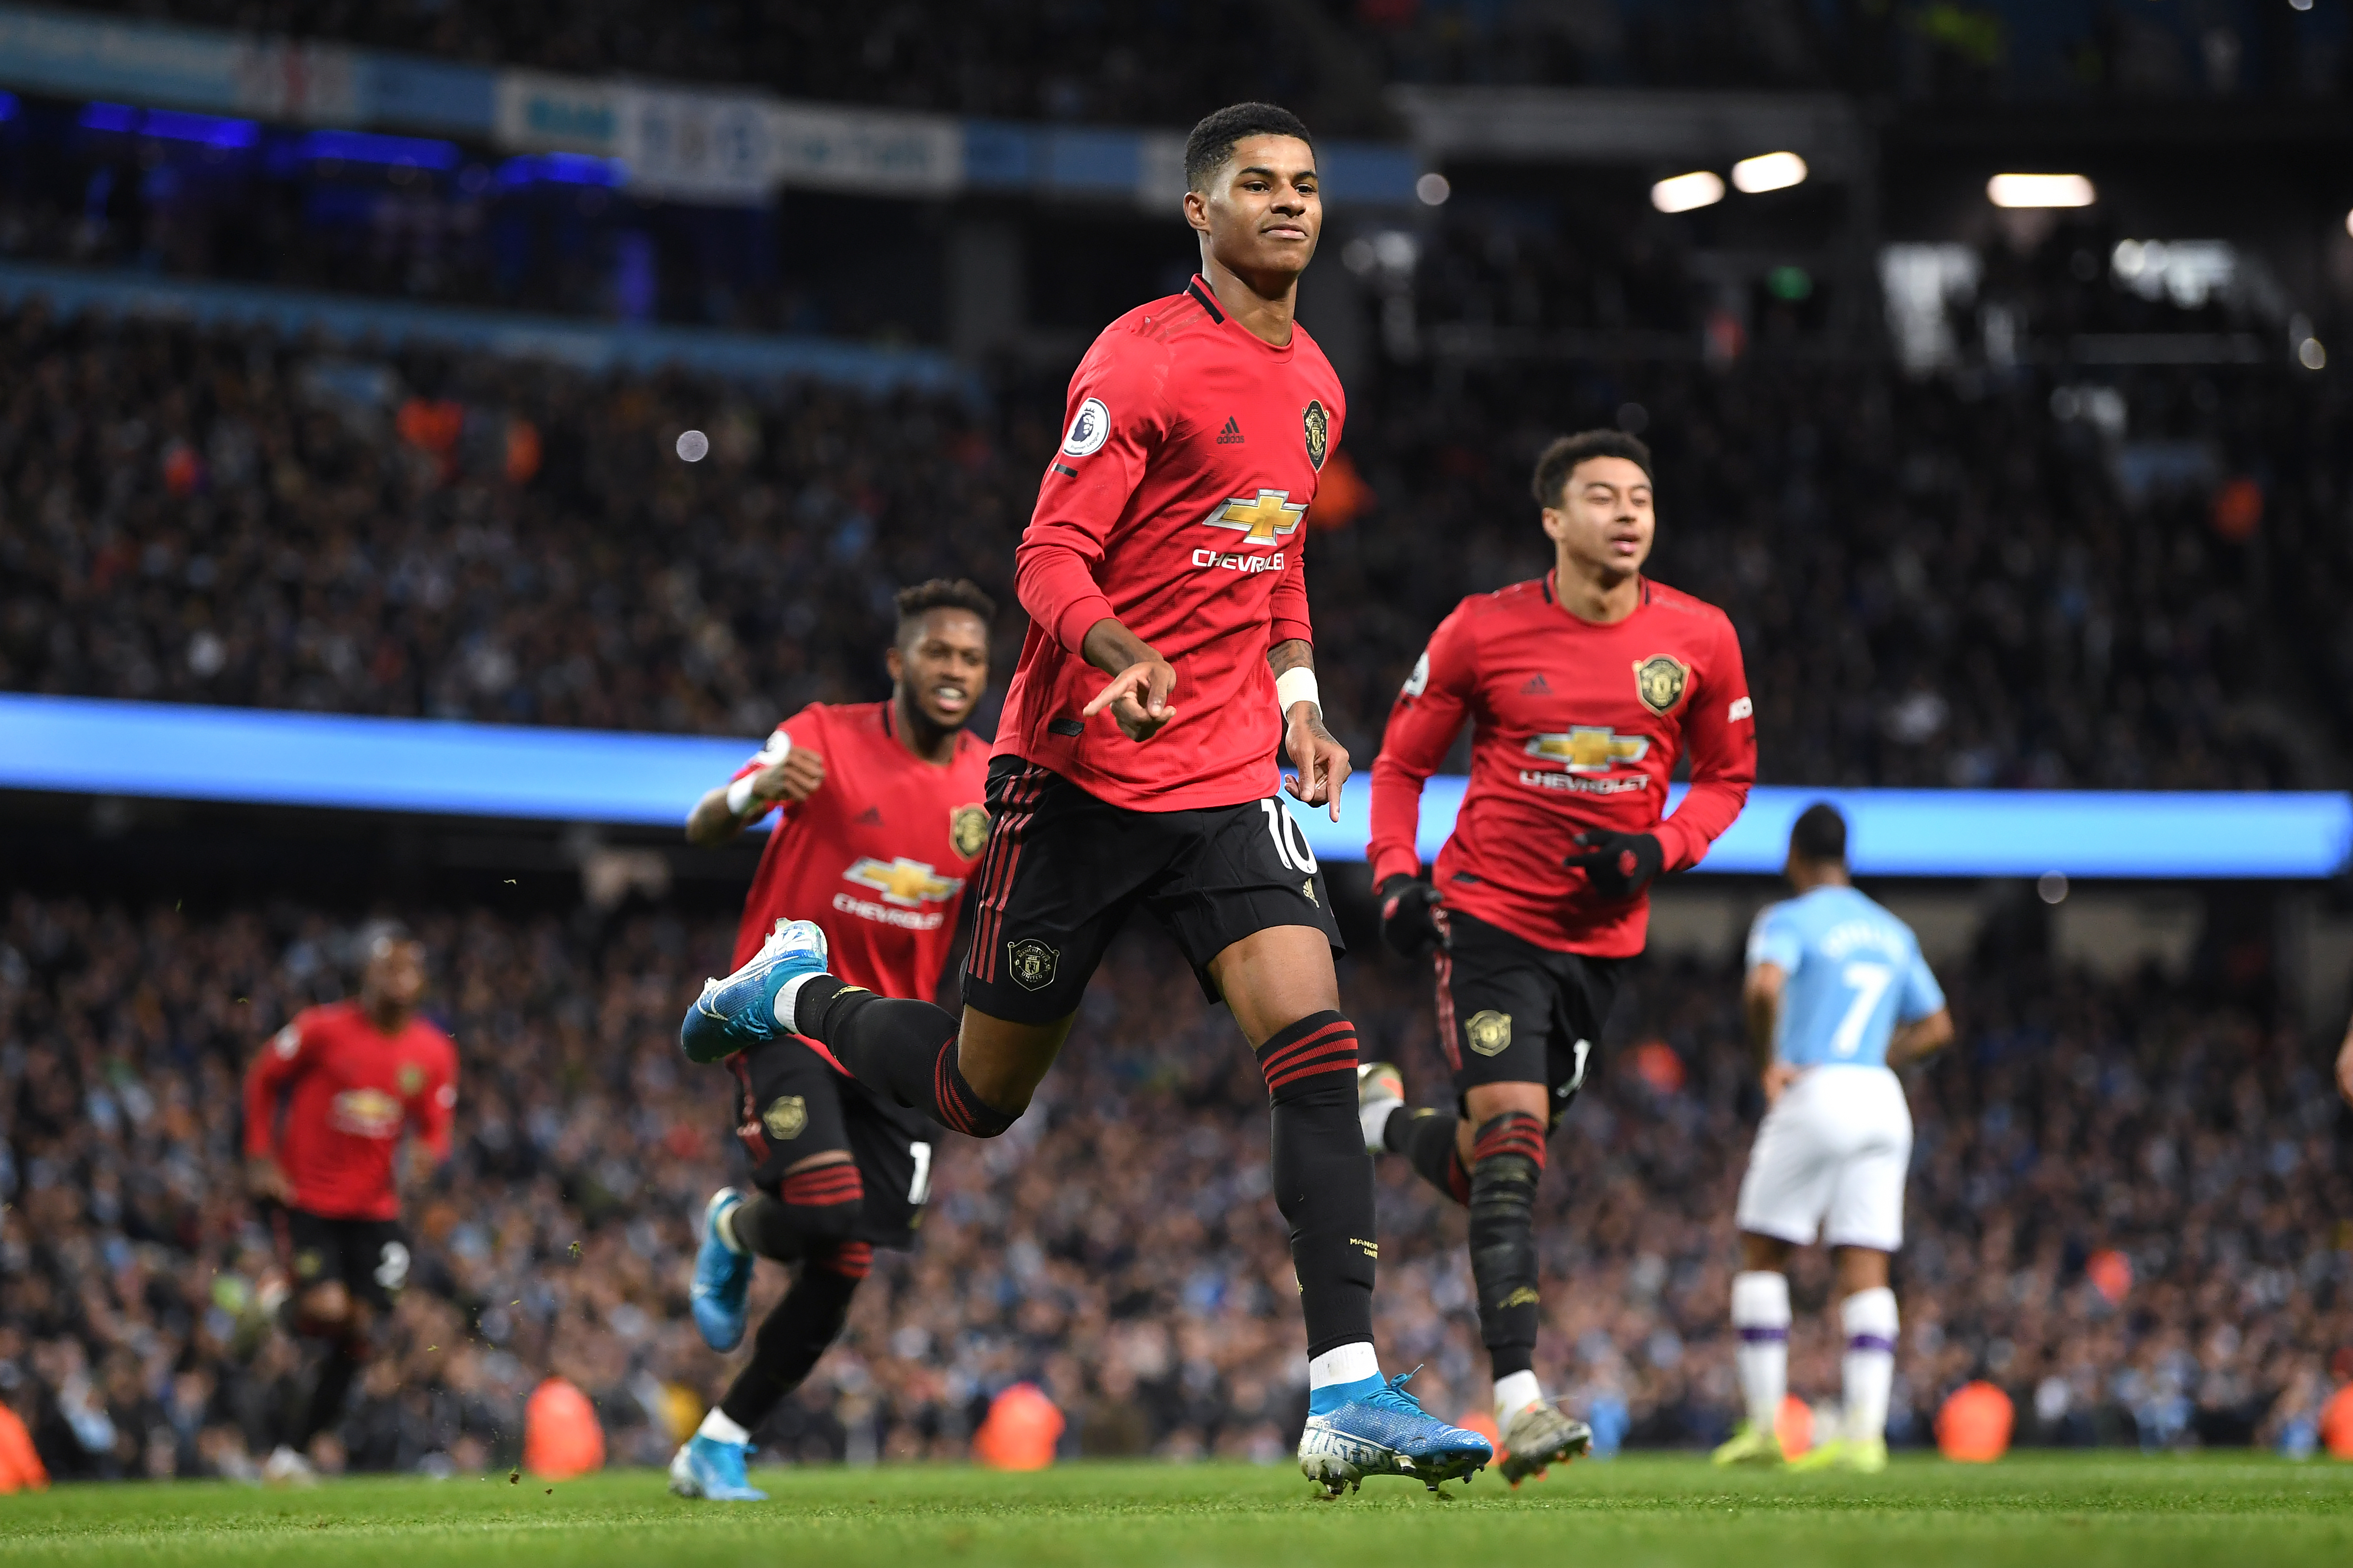 Manchester United put on a fine counter-attacking display to beat Manchester City 2-1 (Photo by Michael Regan/Getty Images)